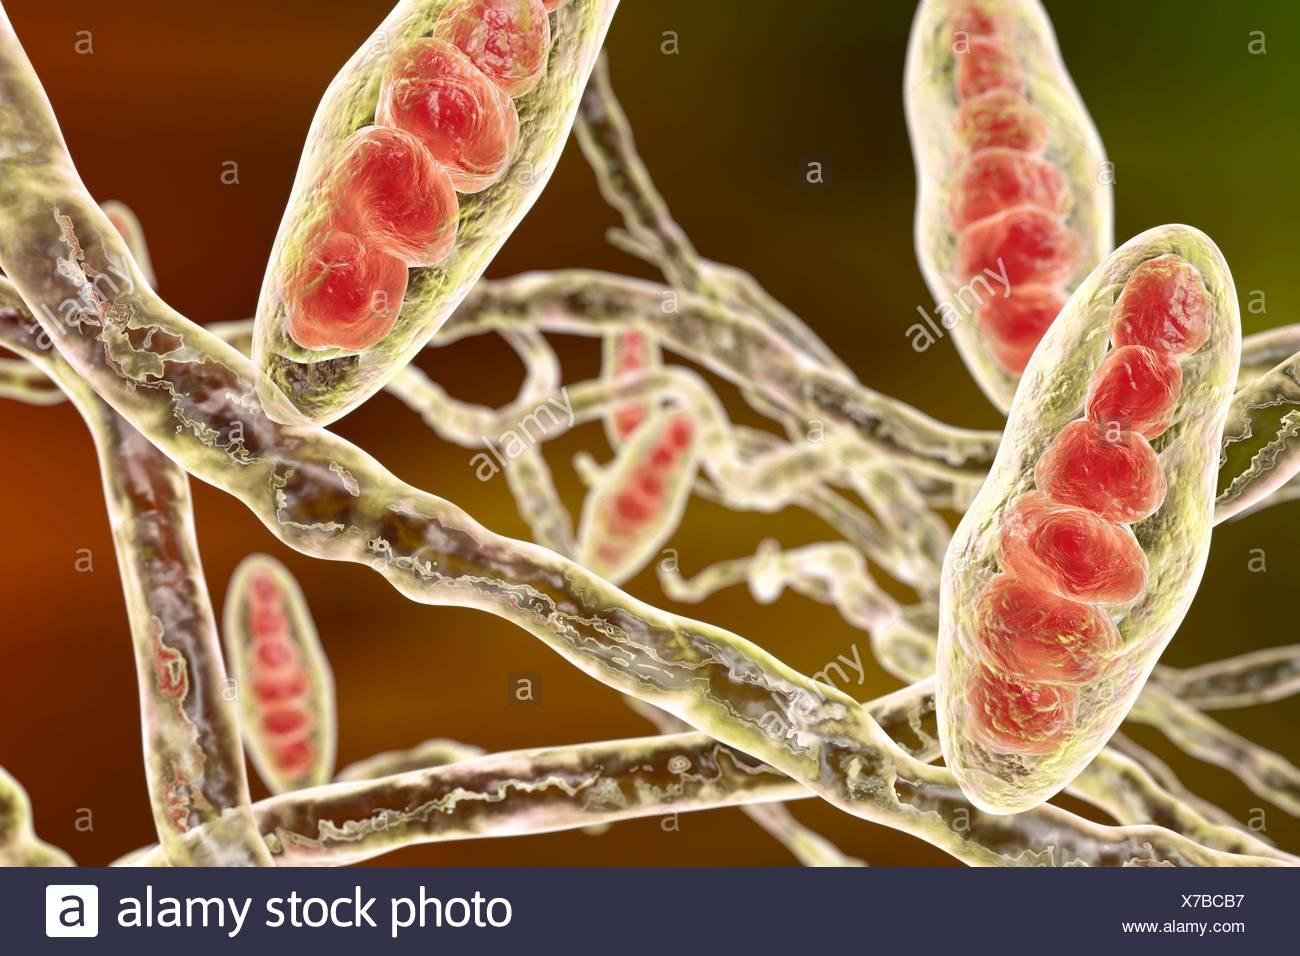 Fungus hyphae stock photos fungus hyphae stock images - Can ringworm spread in a swimming pool ...